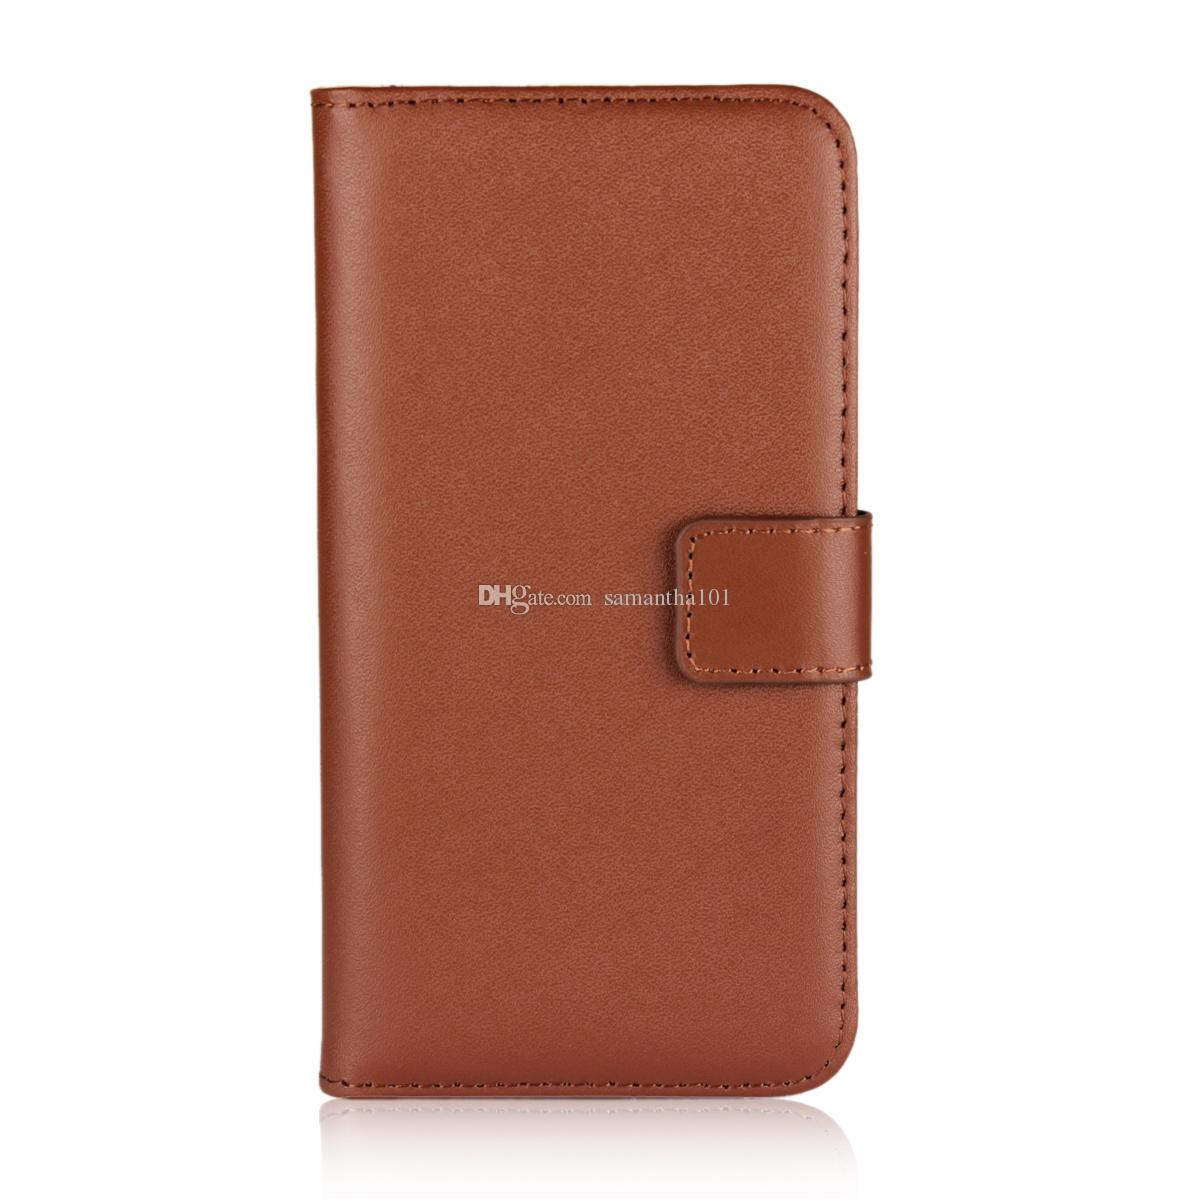 Handy Folding Case Protective Cover for iPhone X Genuine Leather Book Flip Cover Case Protective Case for iPhone X